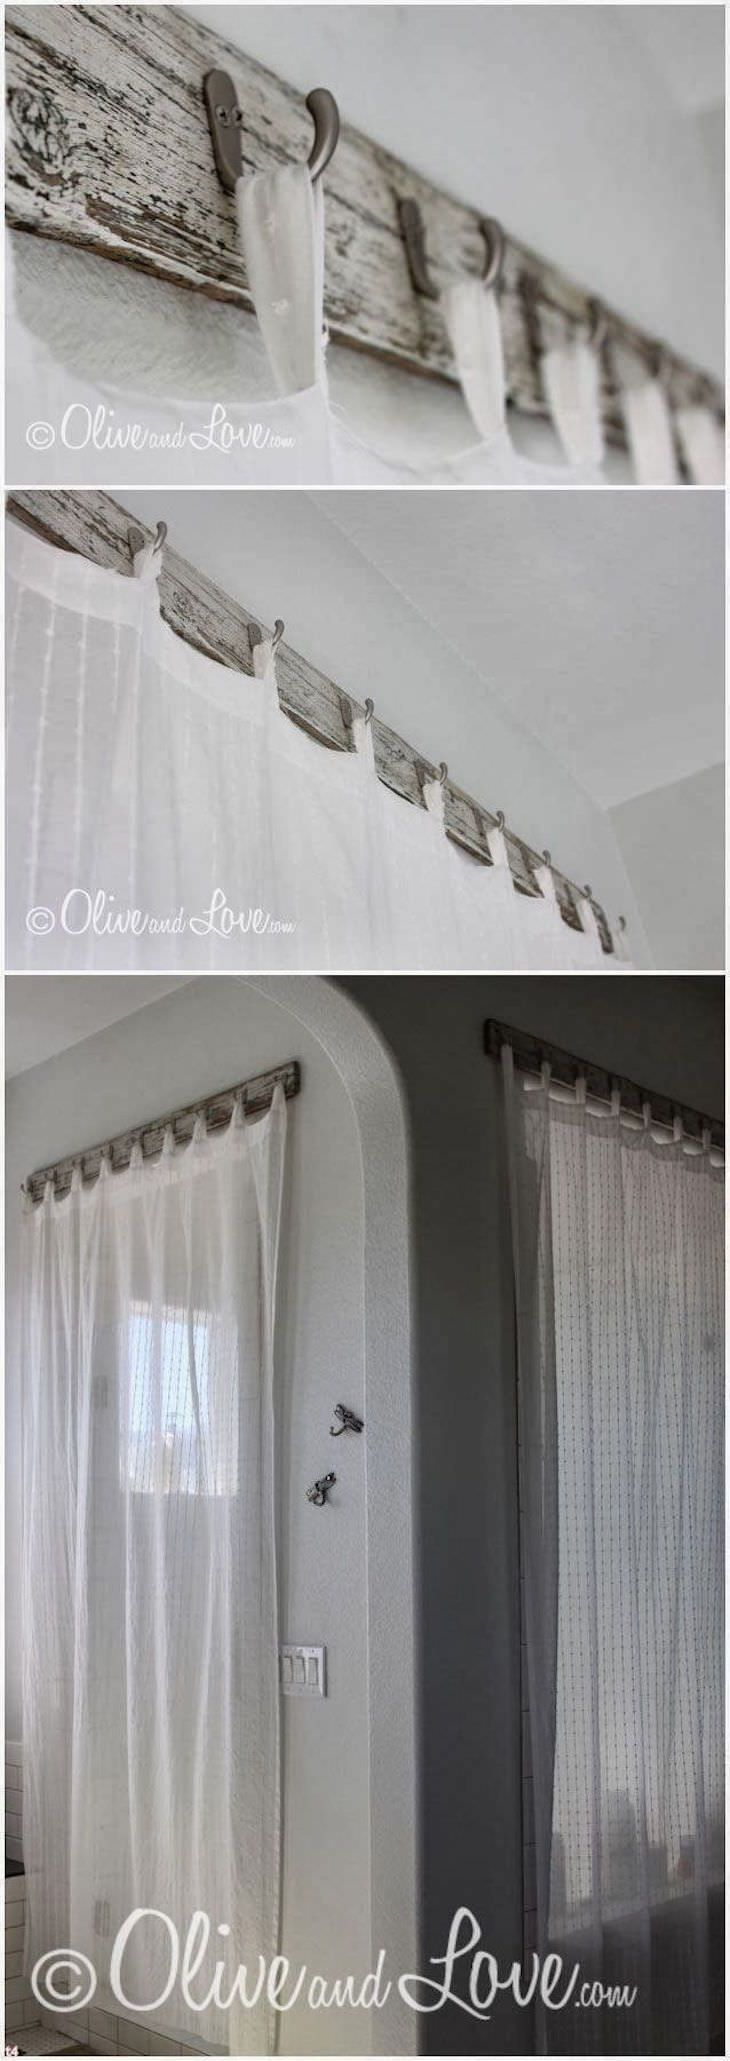 217 Best Crafty Ideas Images On Pinterest Home Decorating How To Wire A Ceiling Rose In Simple Steps Craftomaniac Curtains Hang The New Way Scrap Wood From An Old Bench Cheap Hooks Depot Sheer Ikea